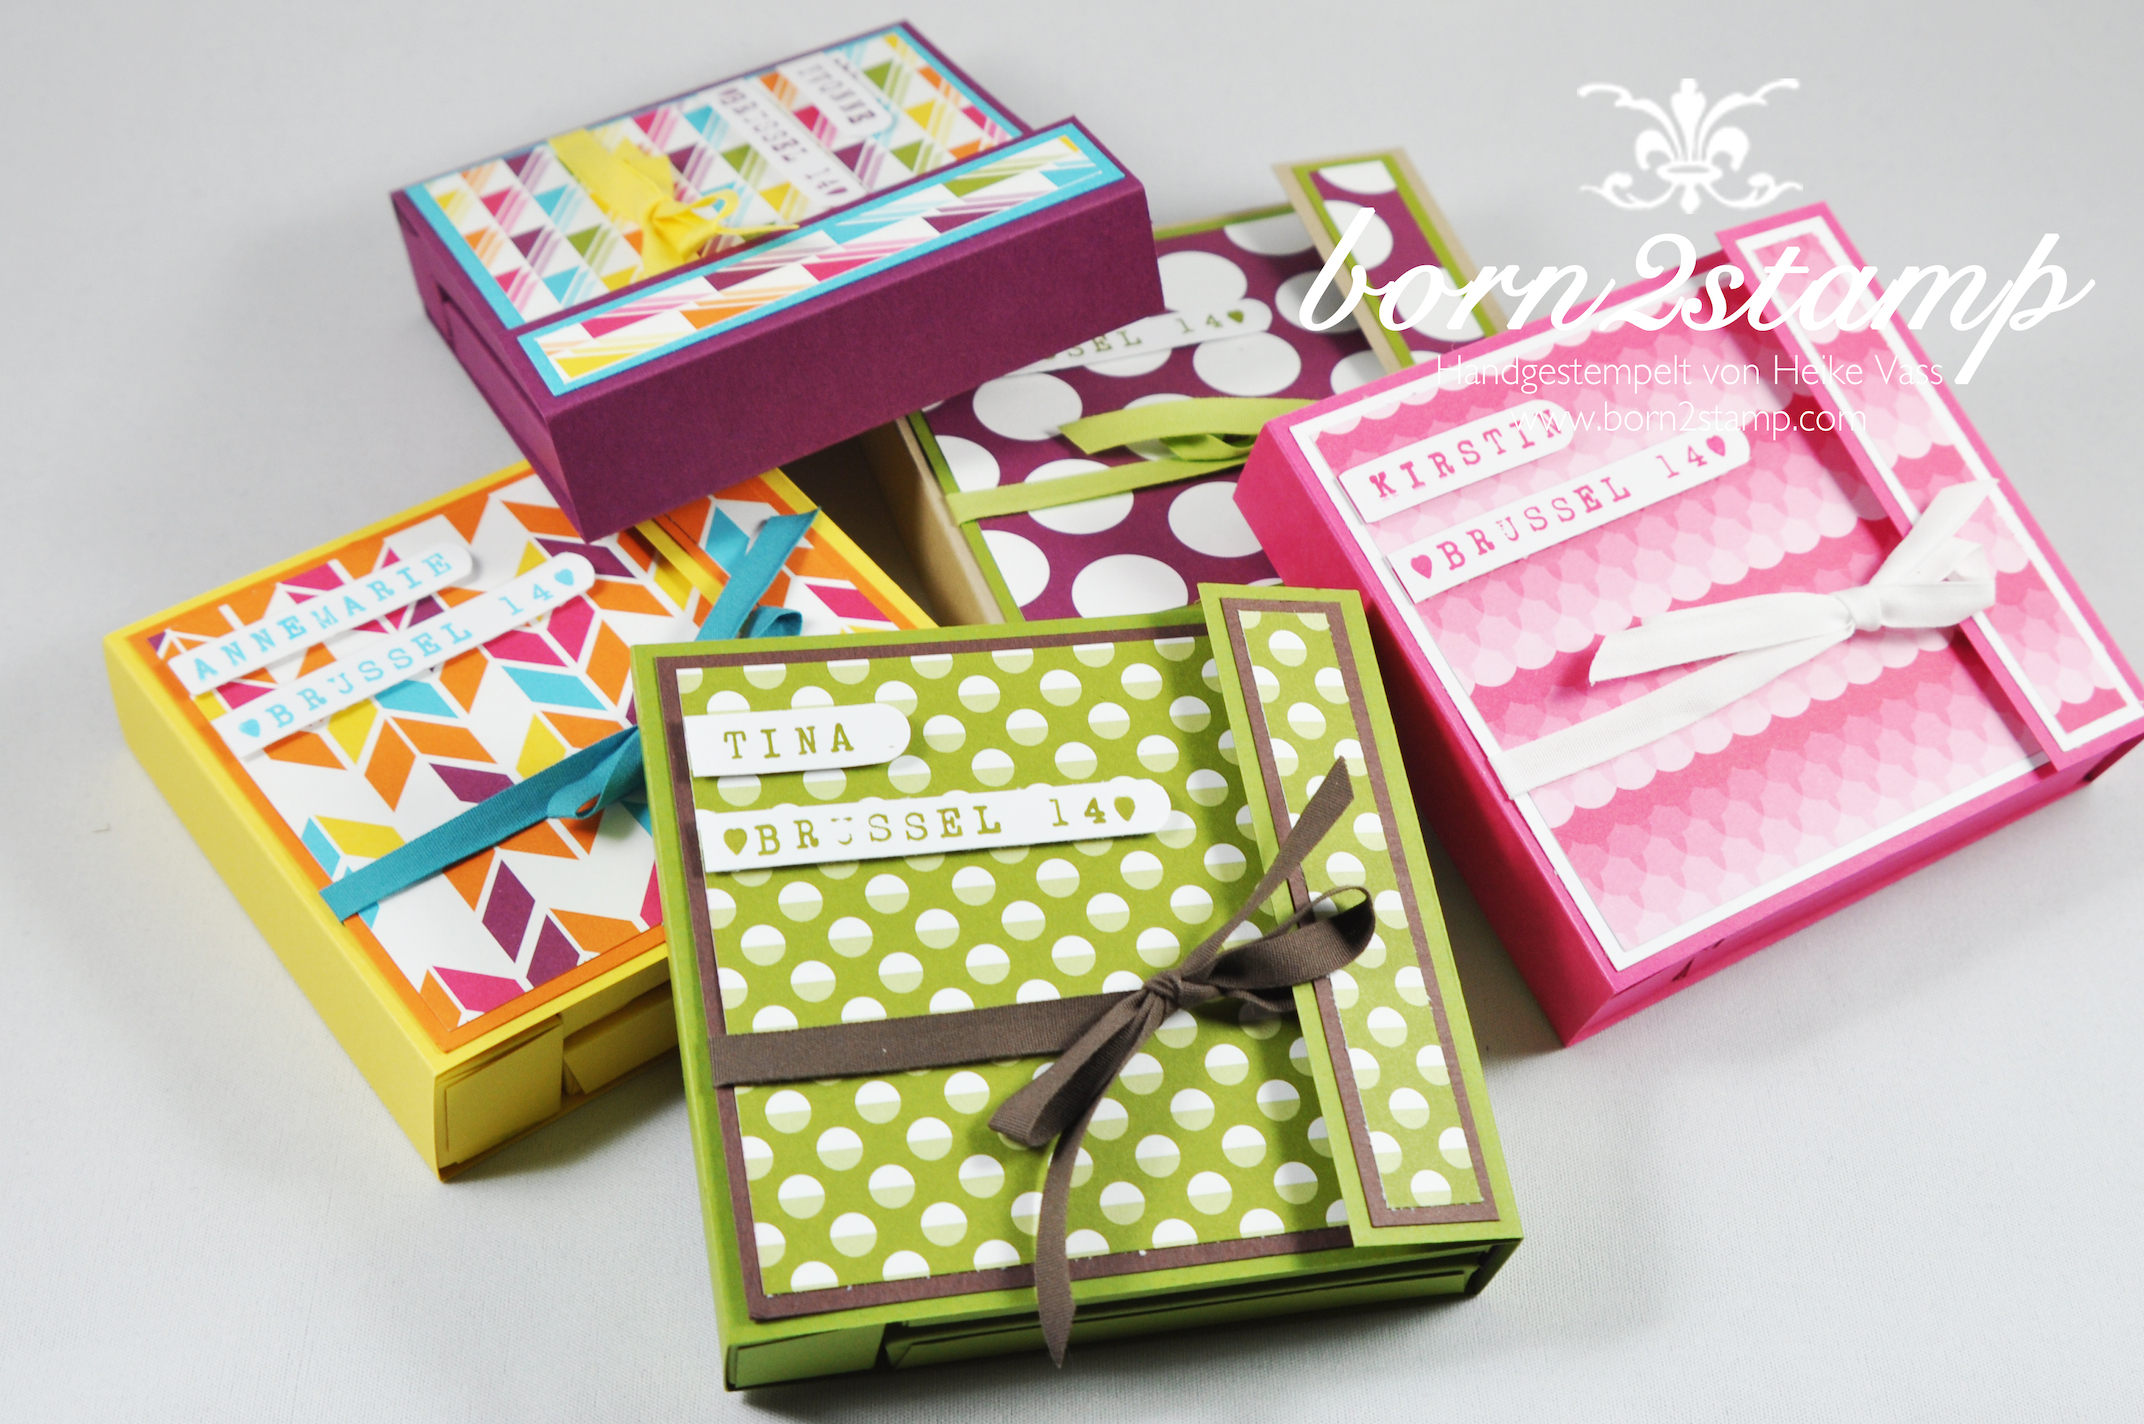 How to STAMPIN UP Kartenmae  born2stamp  Heike Vass